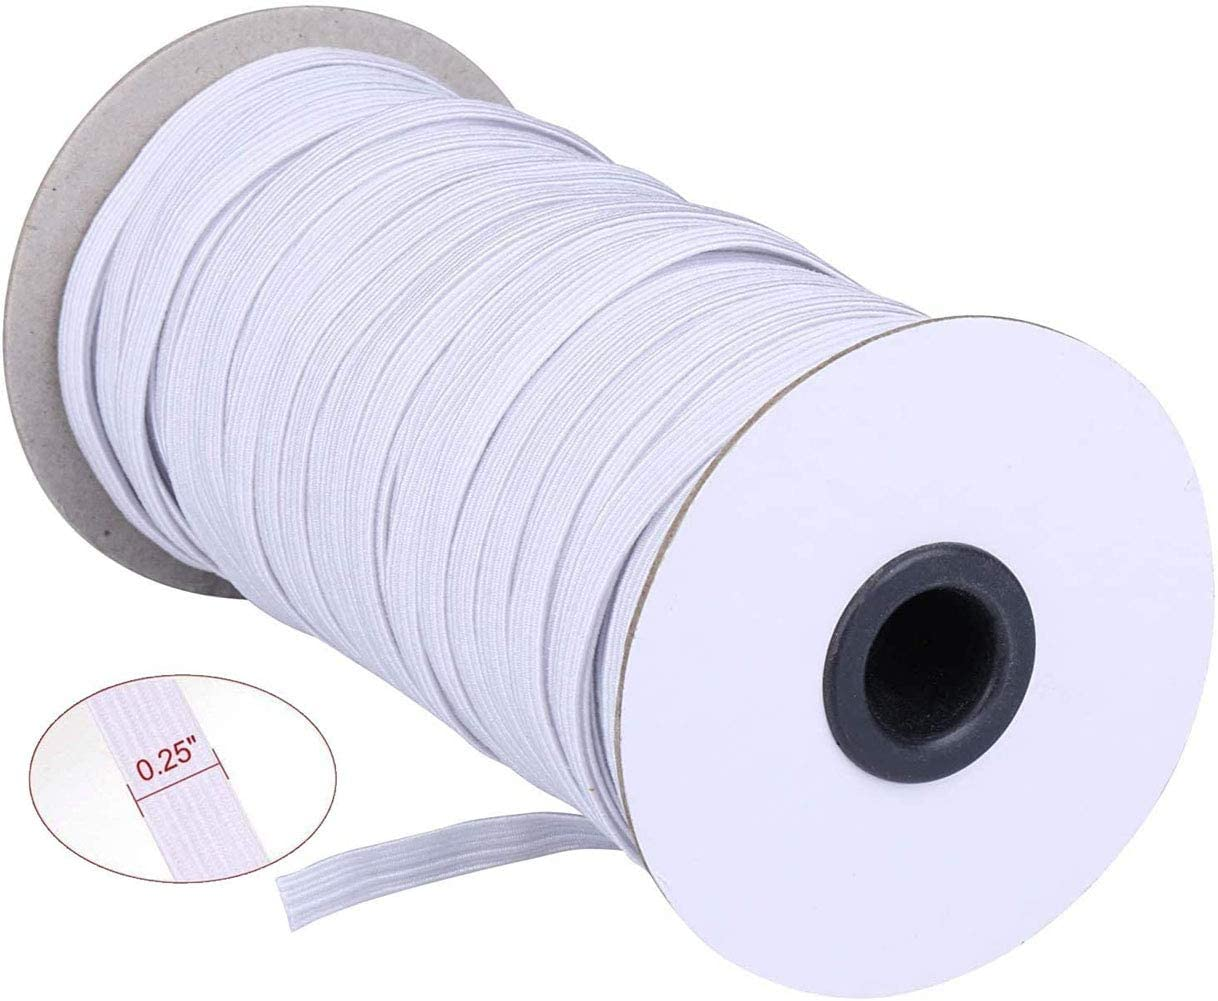 Itopfox 70 Yards Briaded Elastic Band 1//4 inch with Free Tape,Heavy Stretch High Elasticity Knit Spool for Sewing Crafts